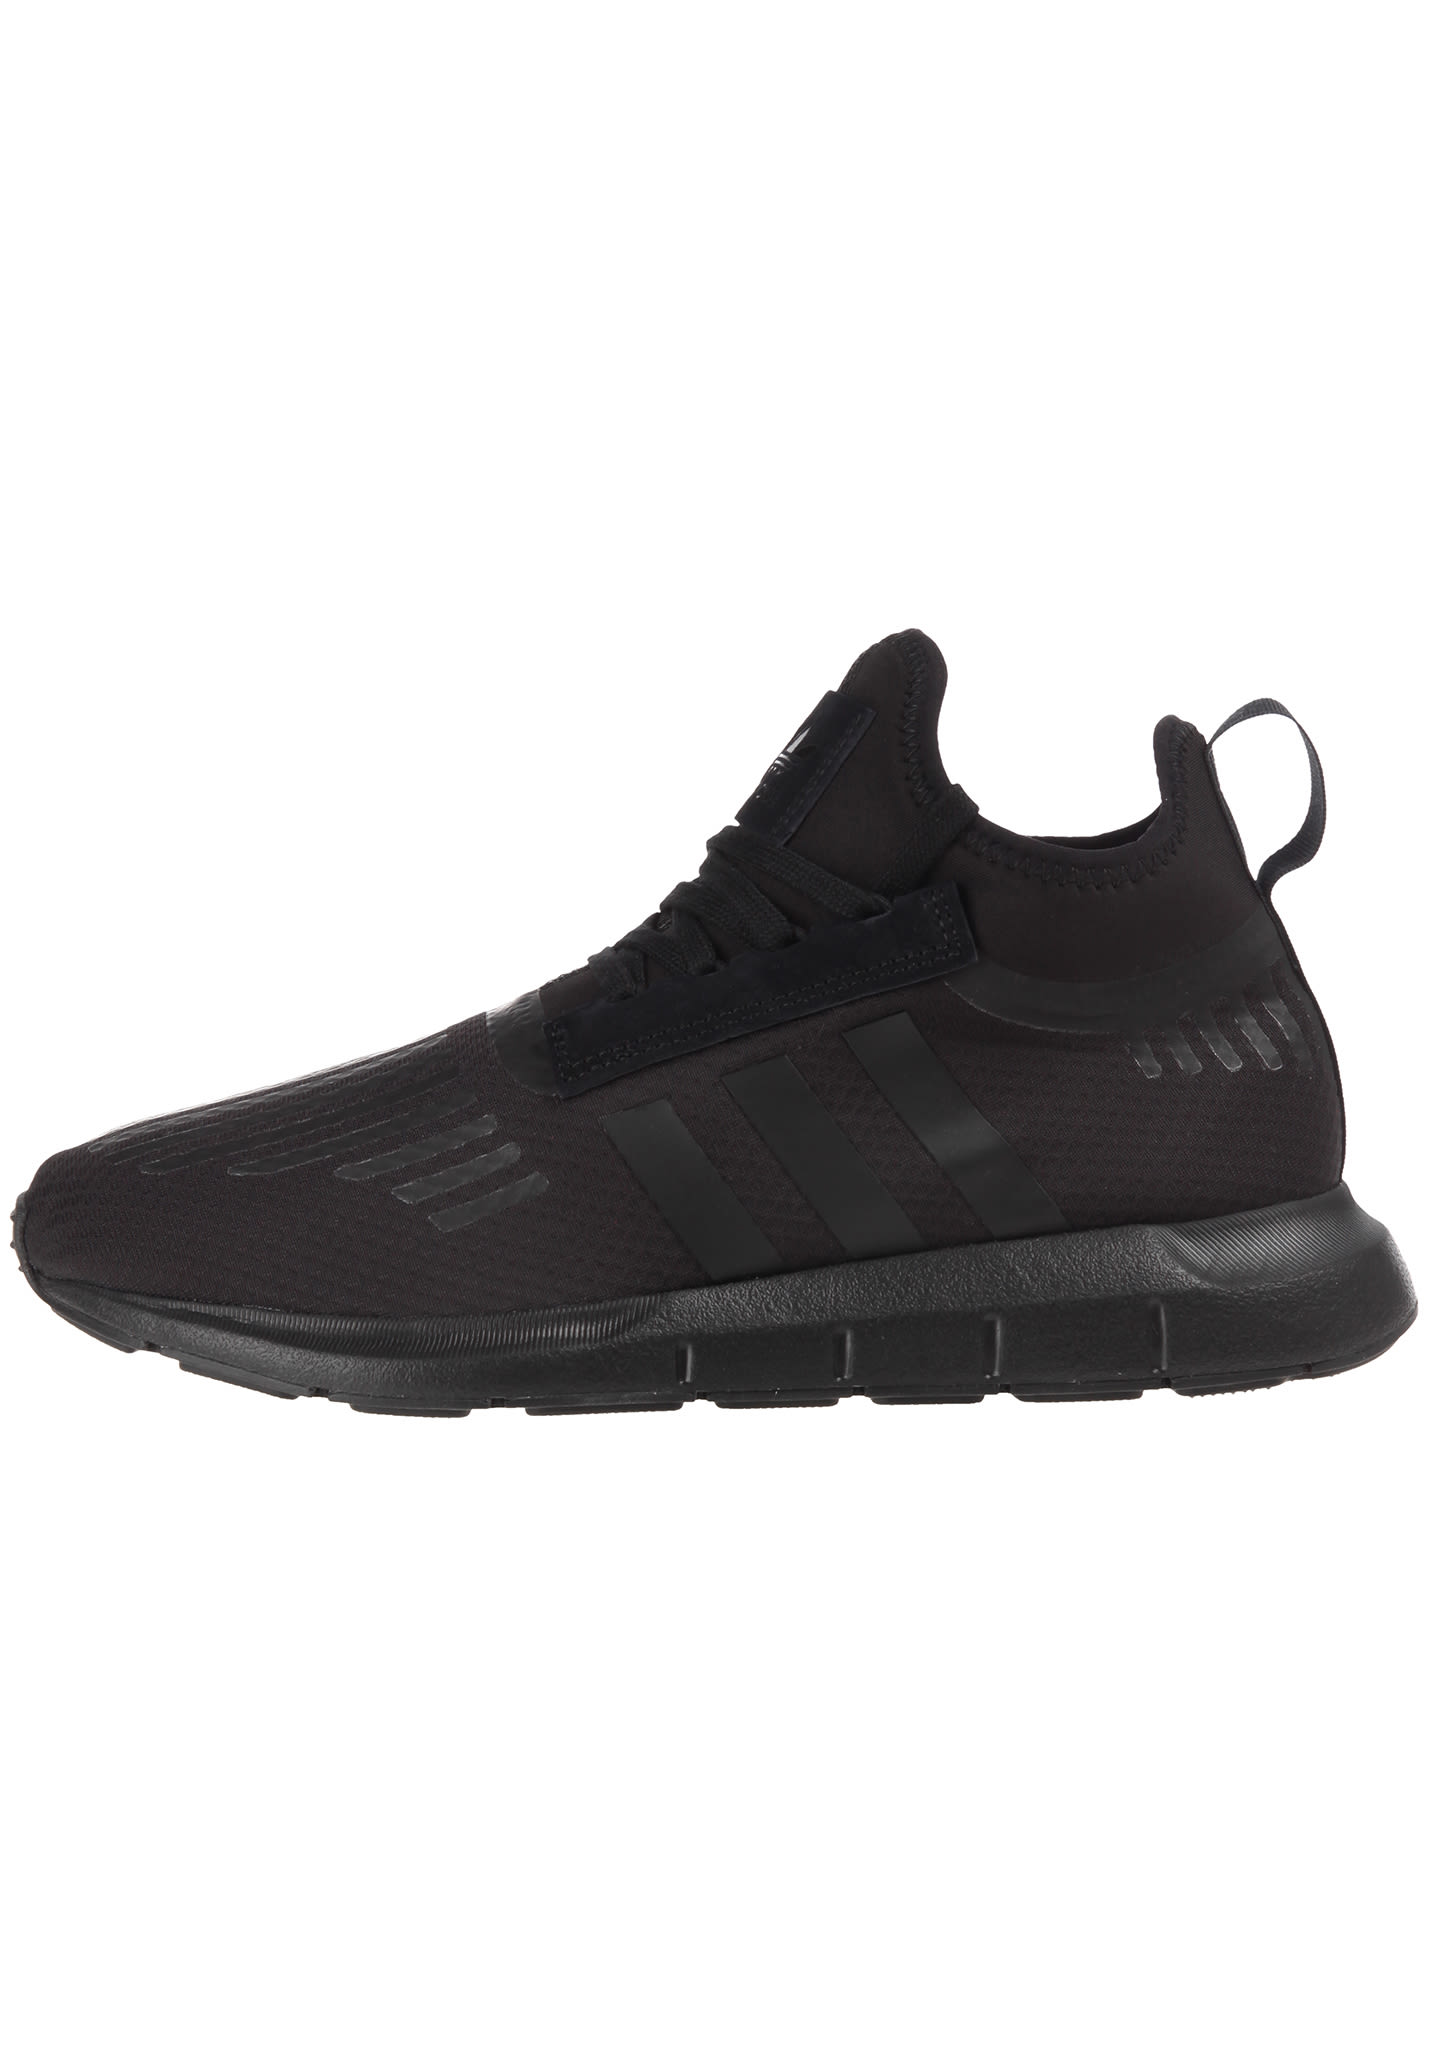 quality design 30f4c cd05c ADIDAS ORIGINALS Swift Run Barrier - Sneakers - Black